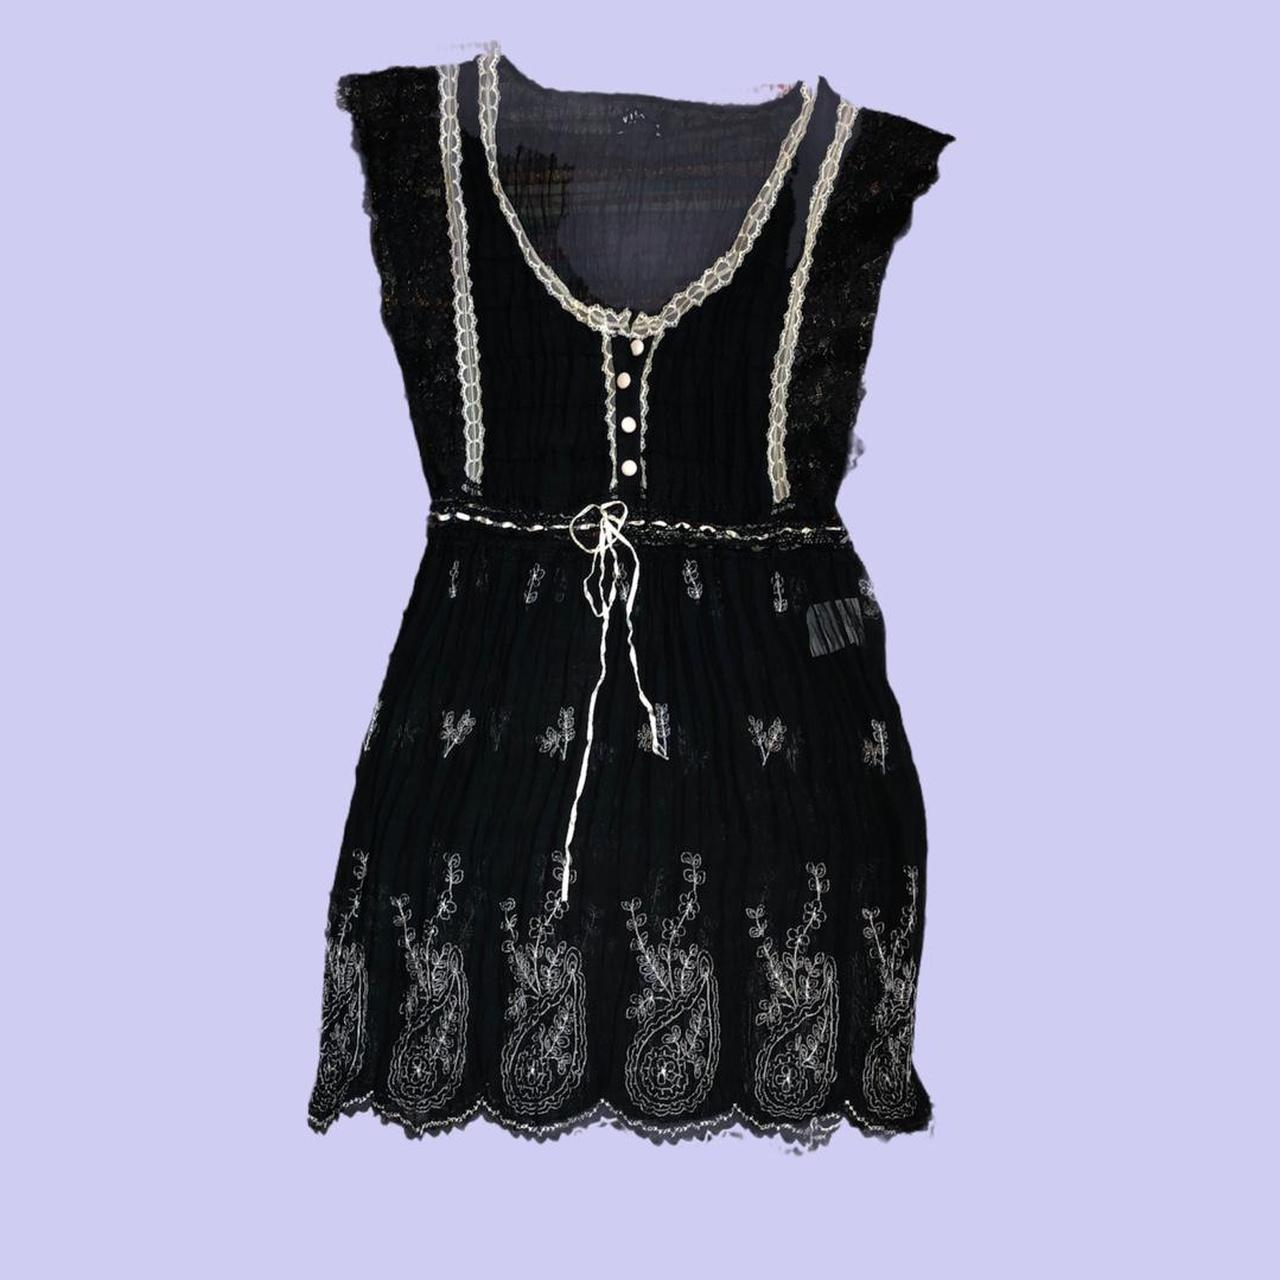 Product Image 1 - Dainty black button dress with